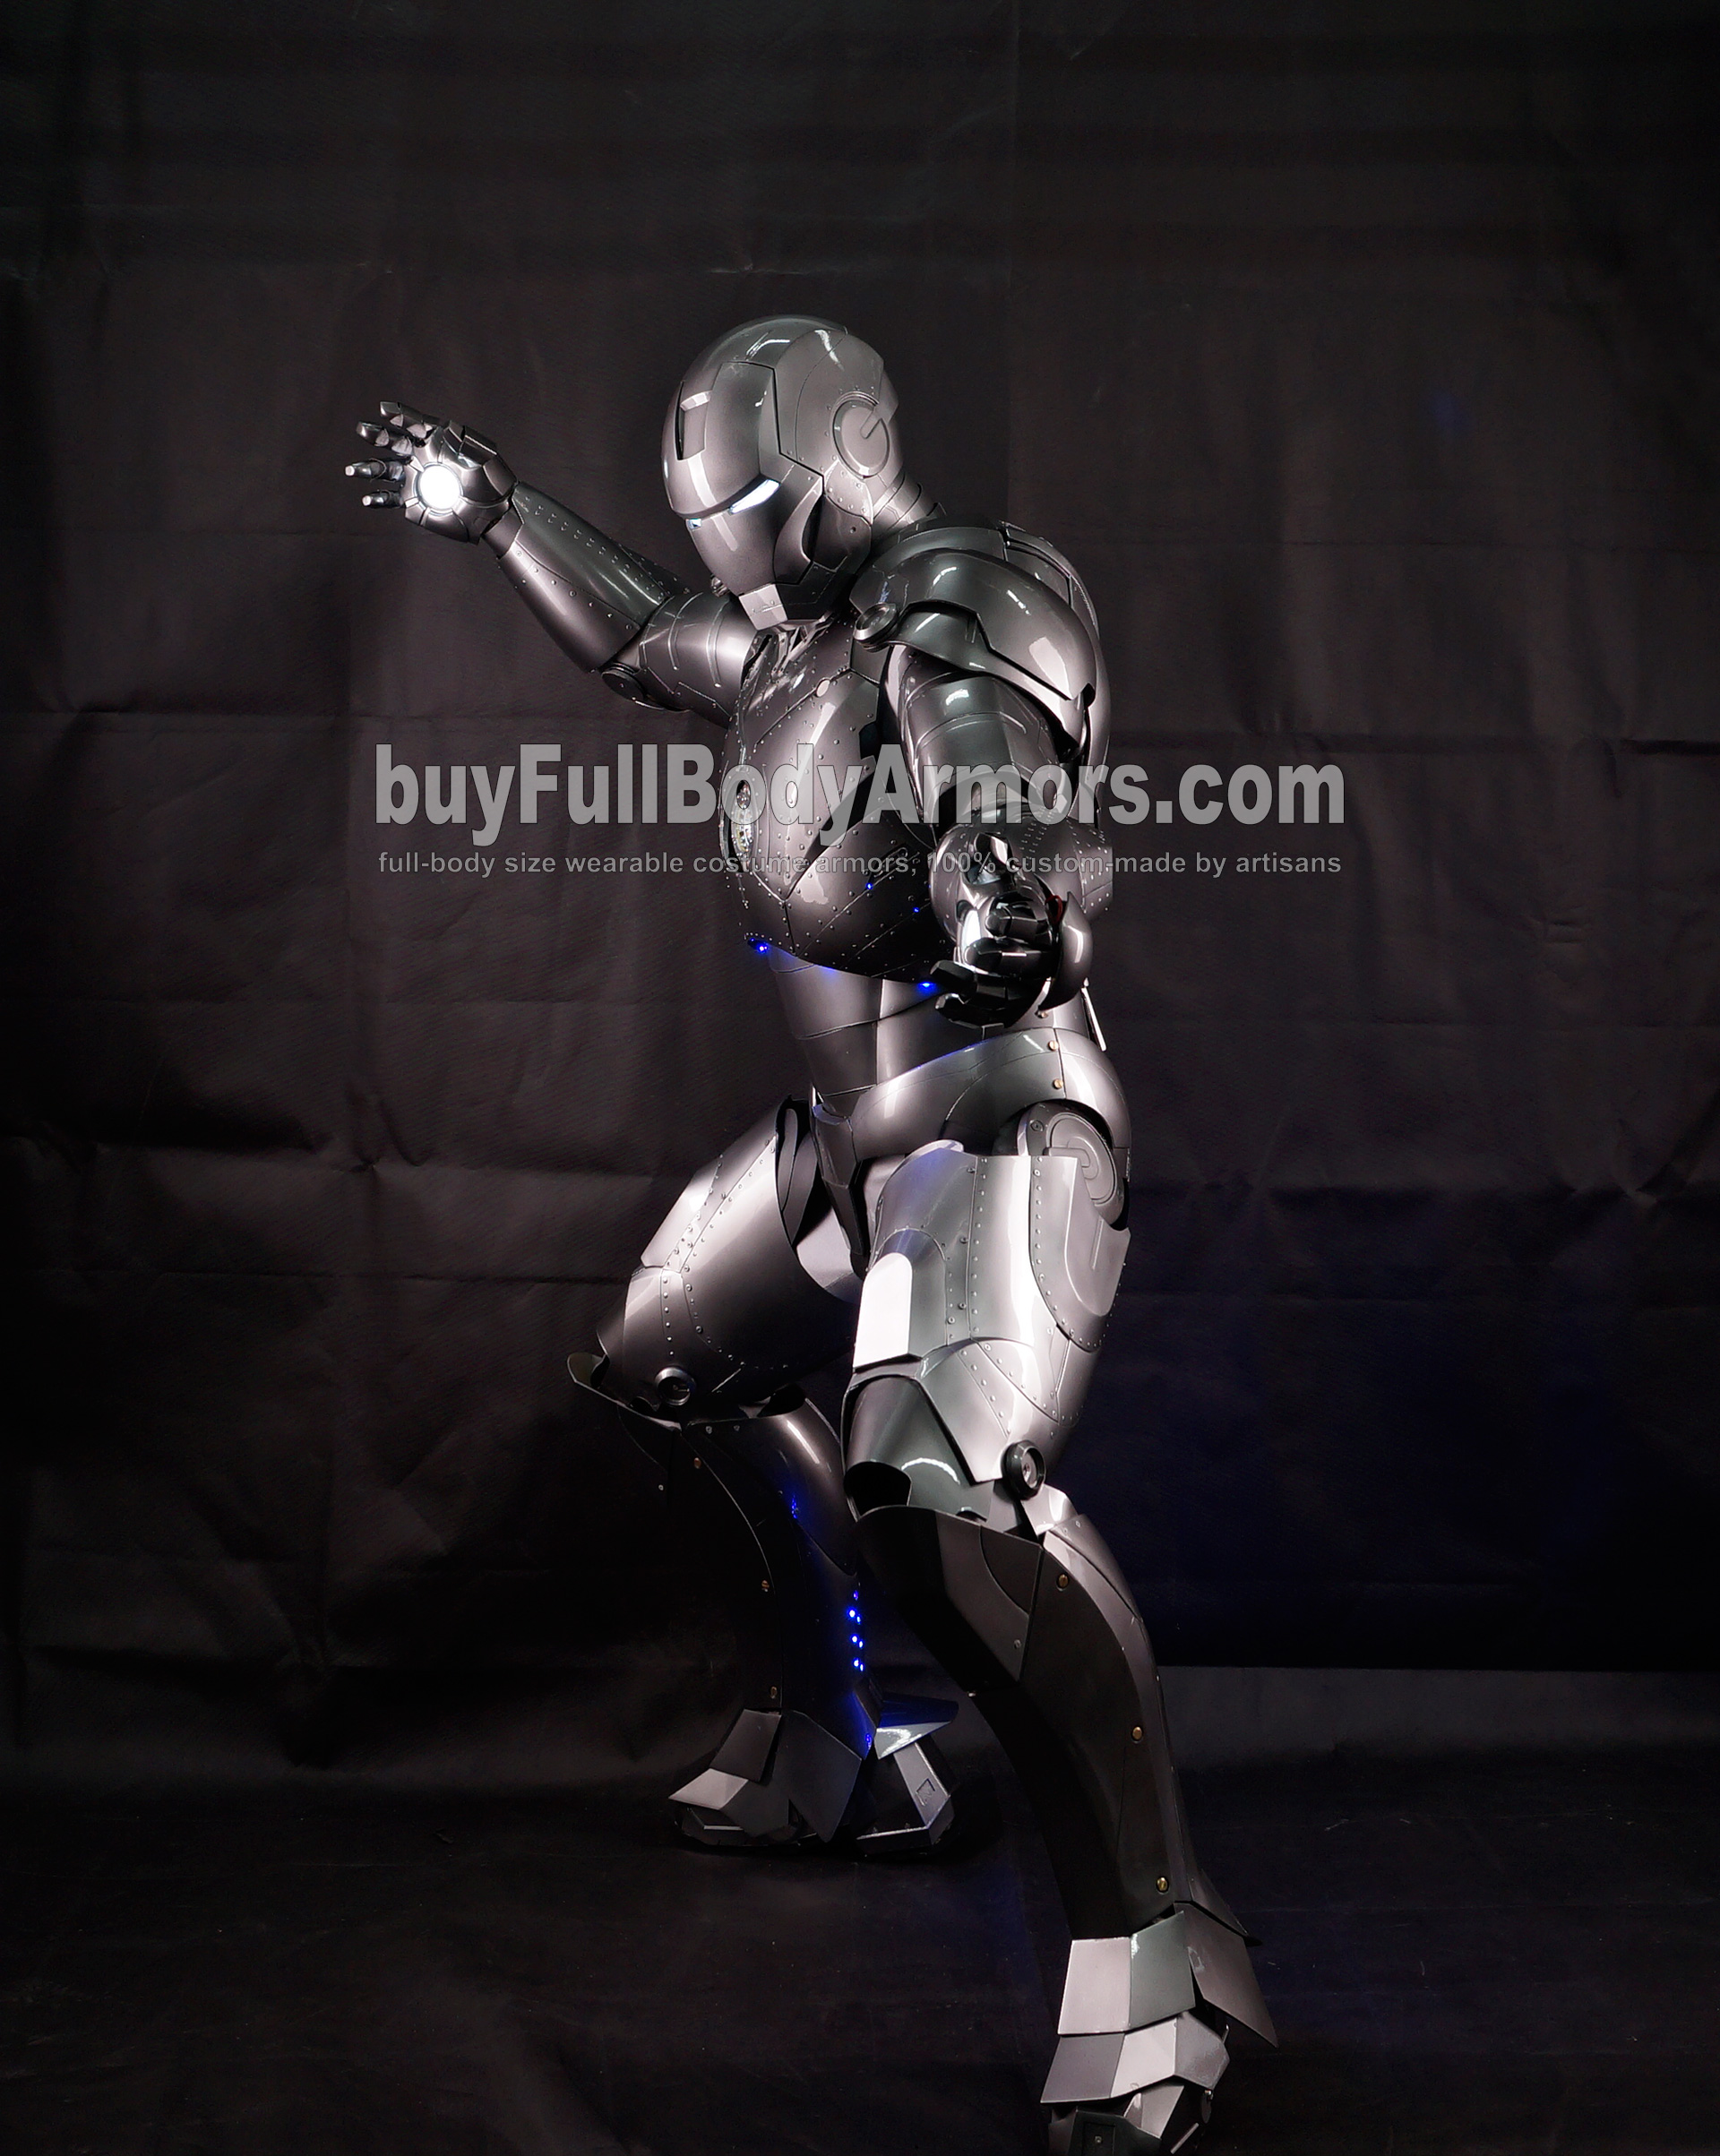 High Definition Photos of the Wearable Iron Man Mark 2 II Armor Costume Suit 5